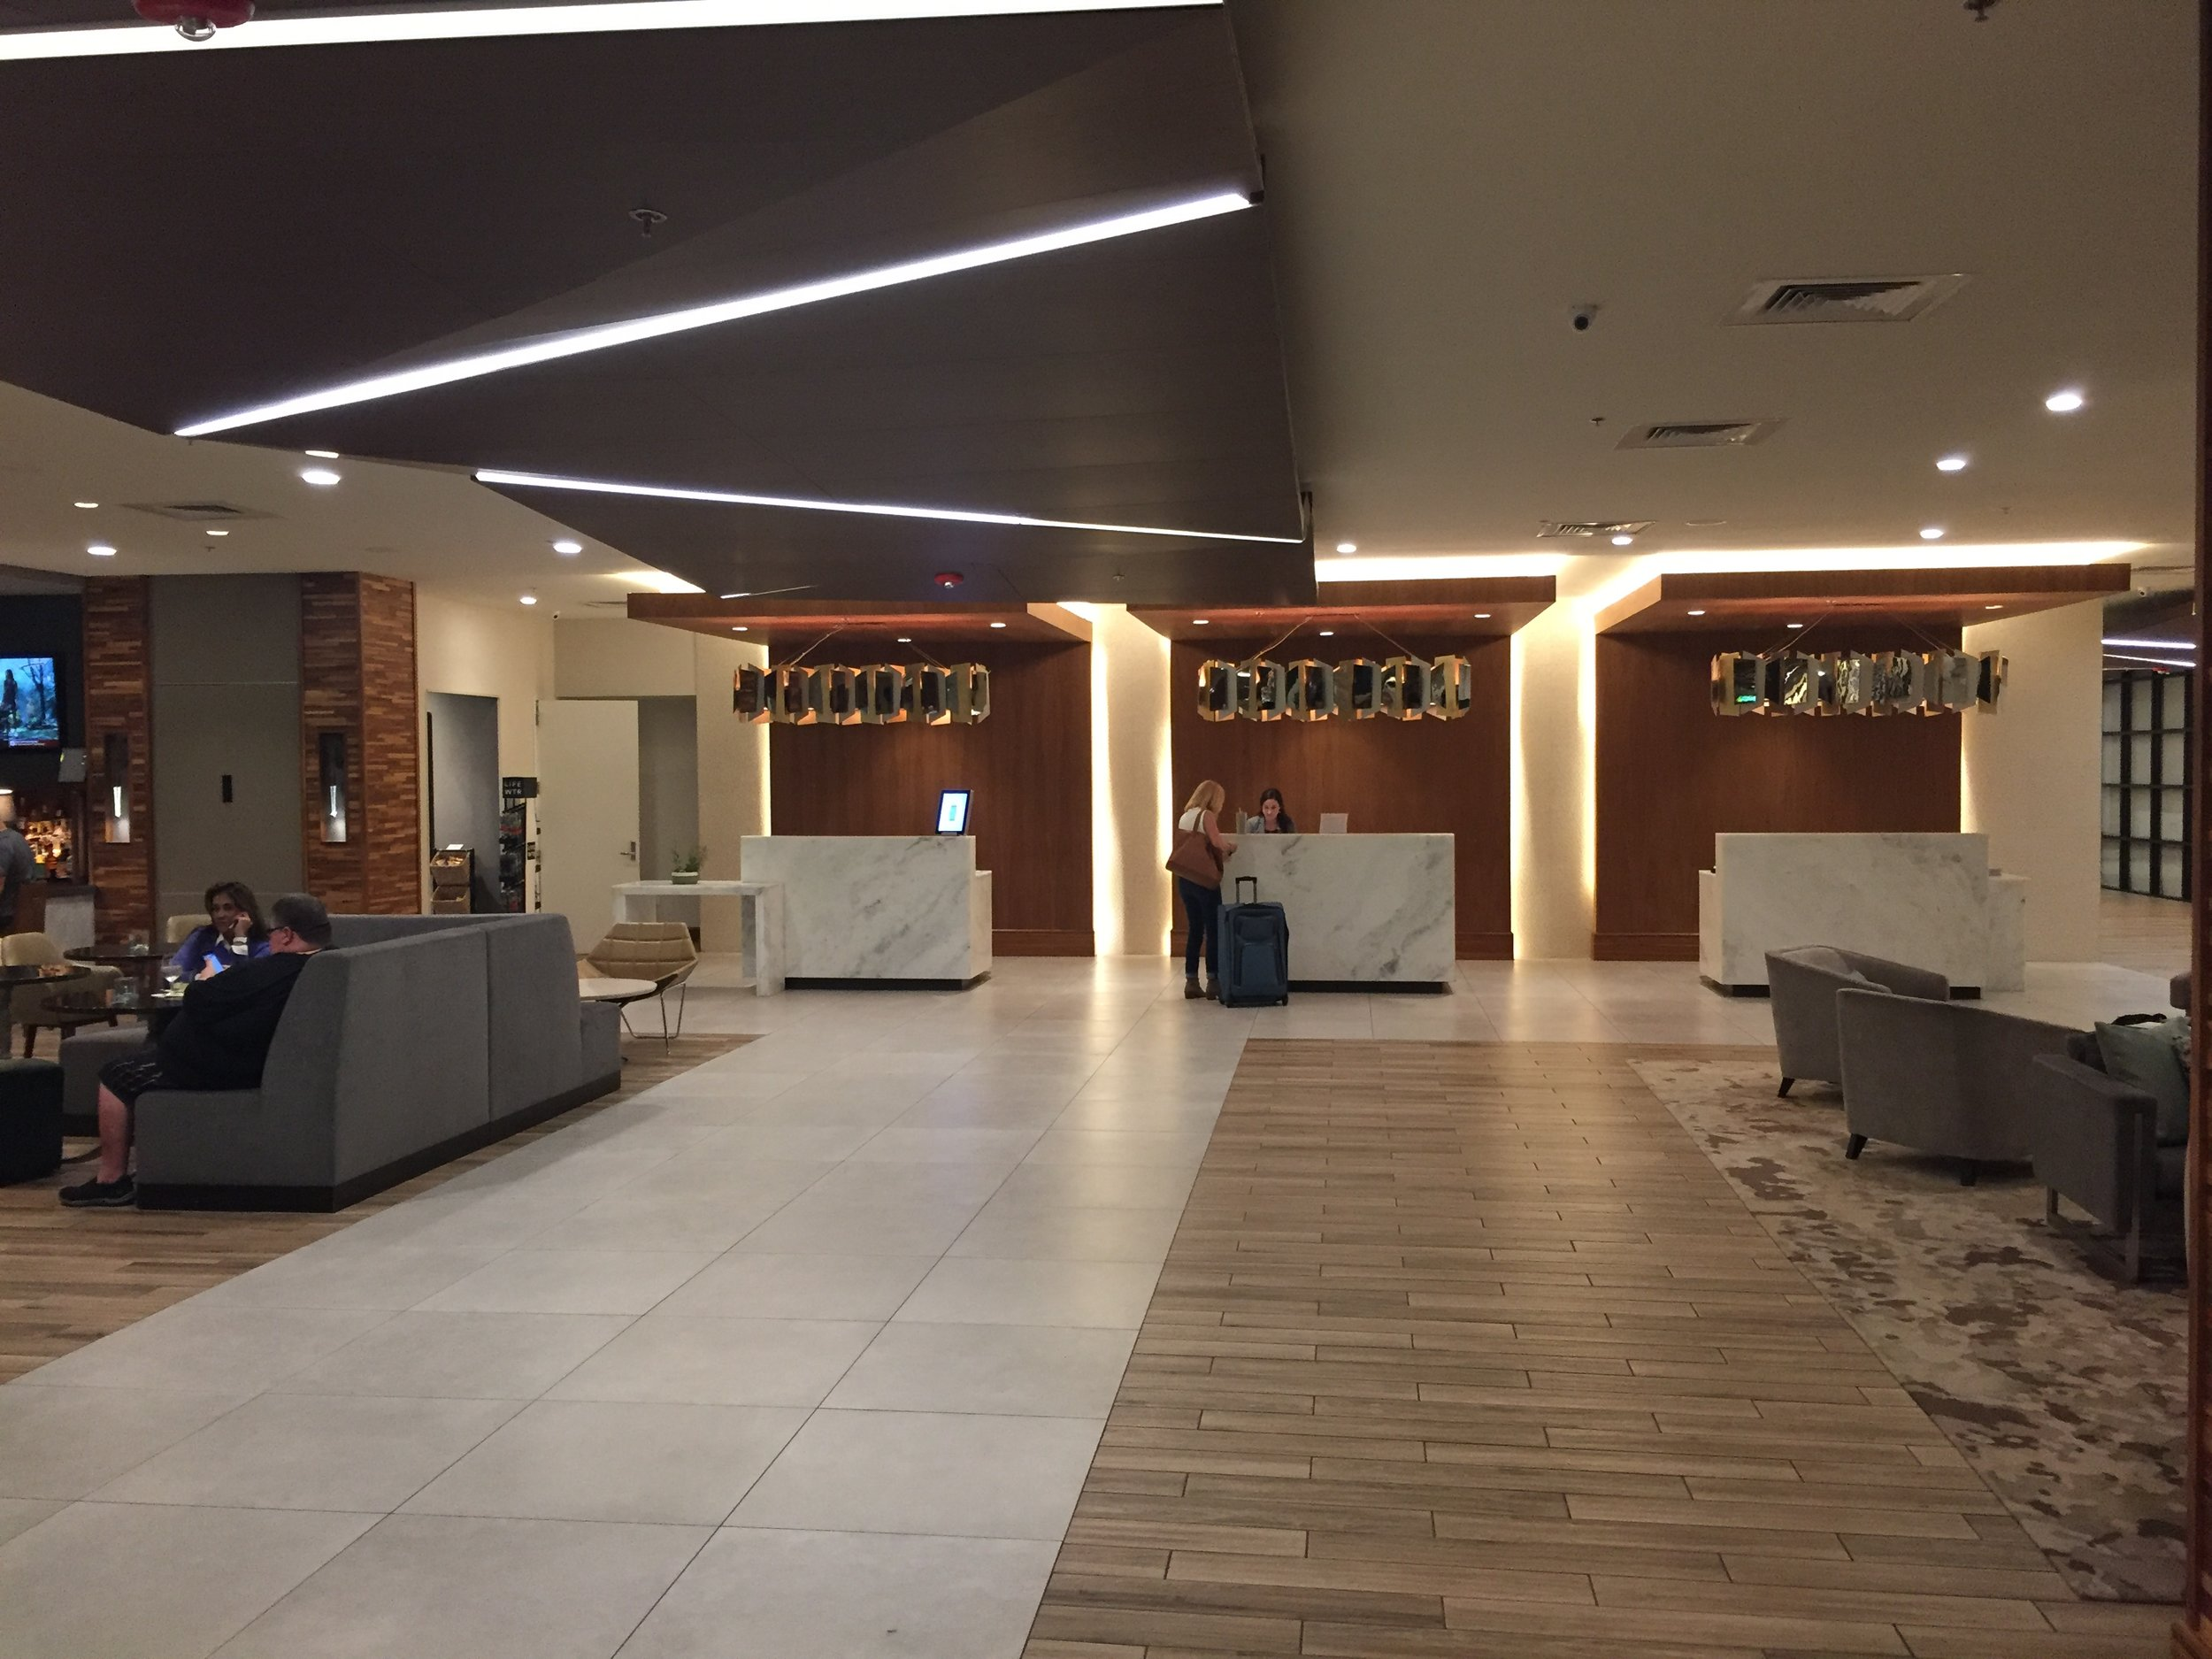 The spacious lobby leads to three check-in stands, where the staff always greets guests with a smile and greeting, whether you're checking in or heading to the elevators.